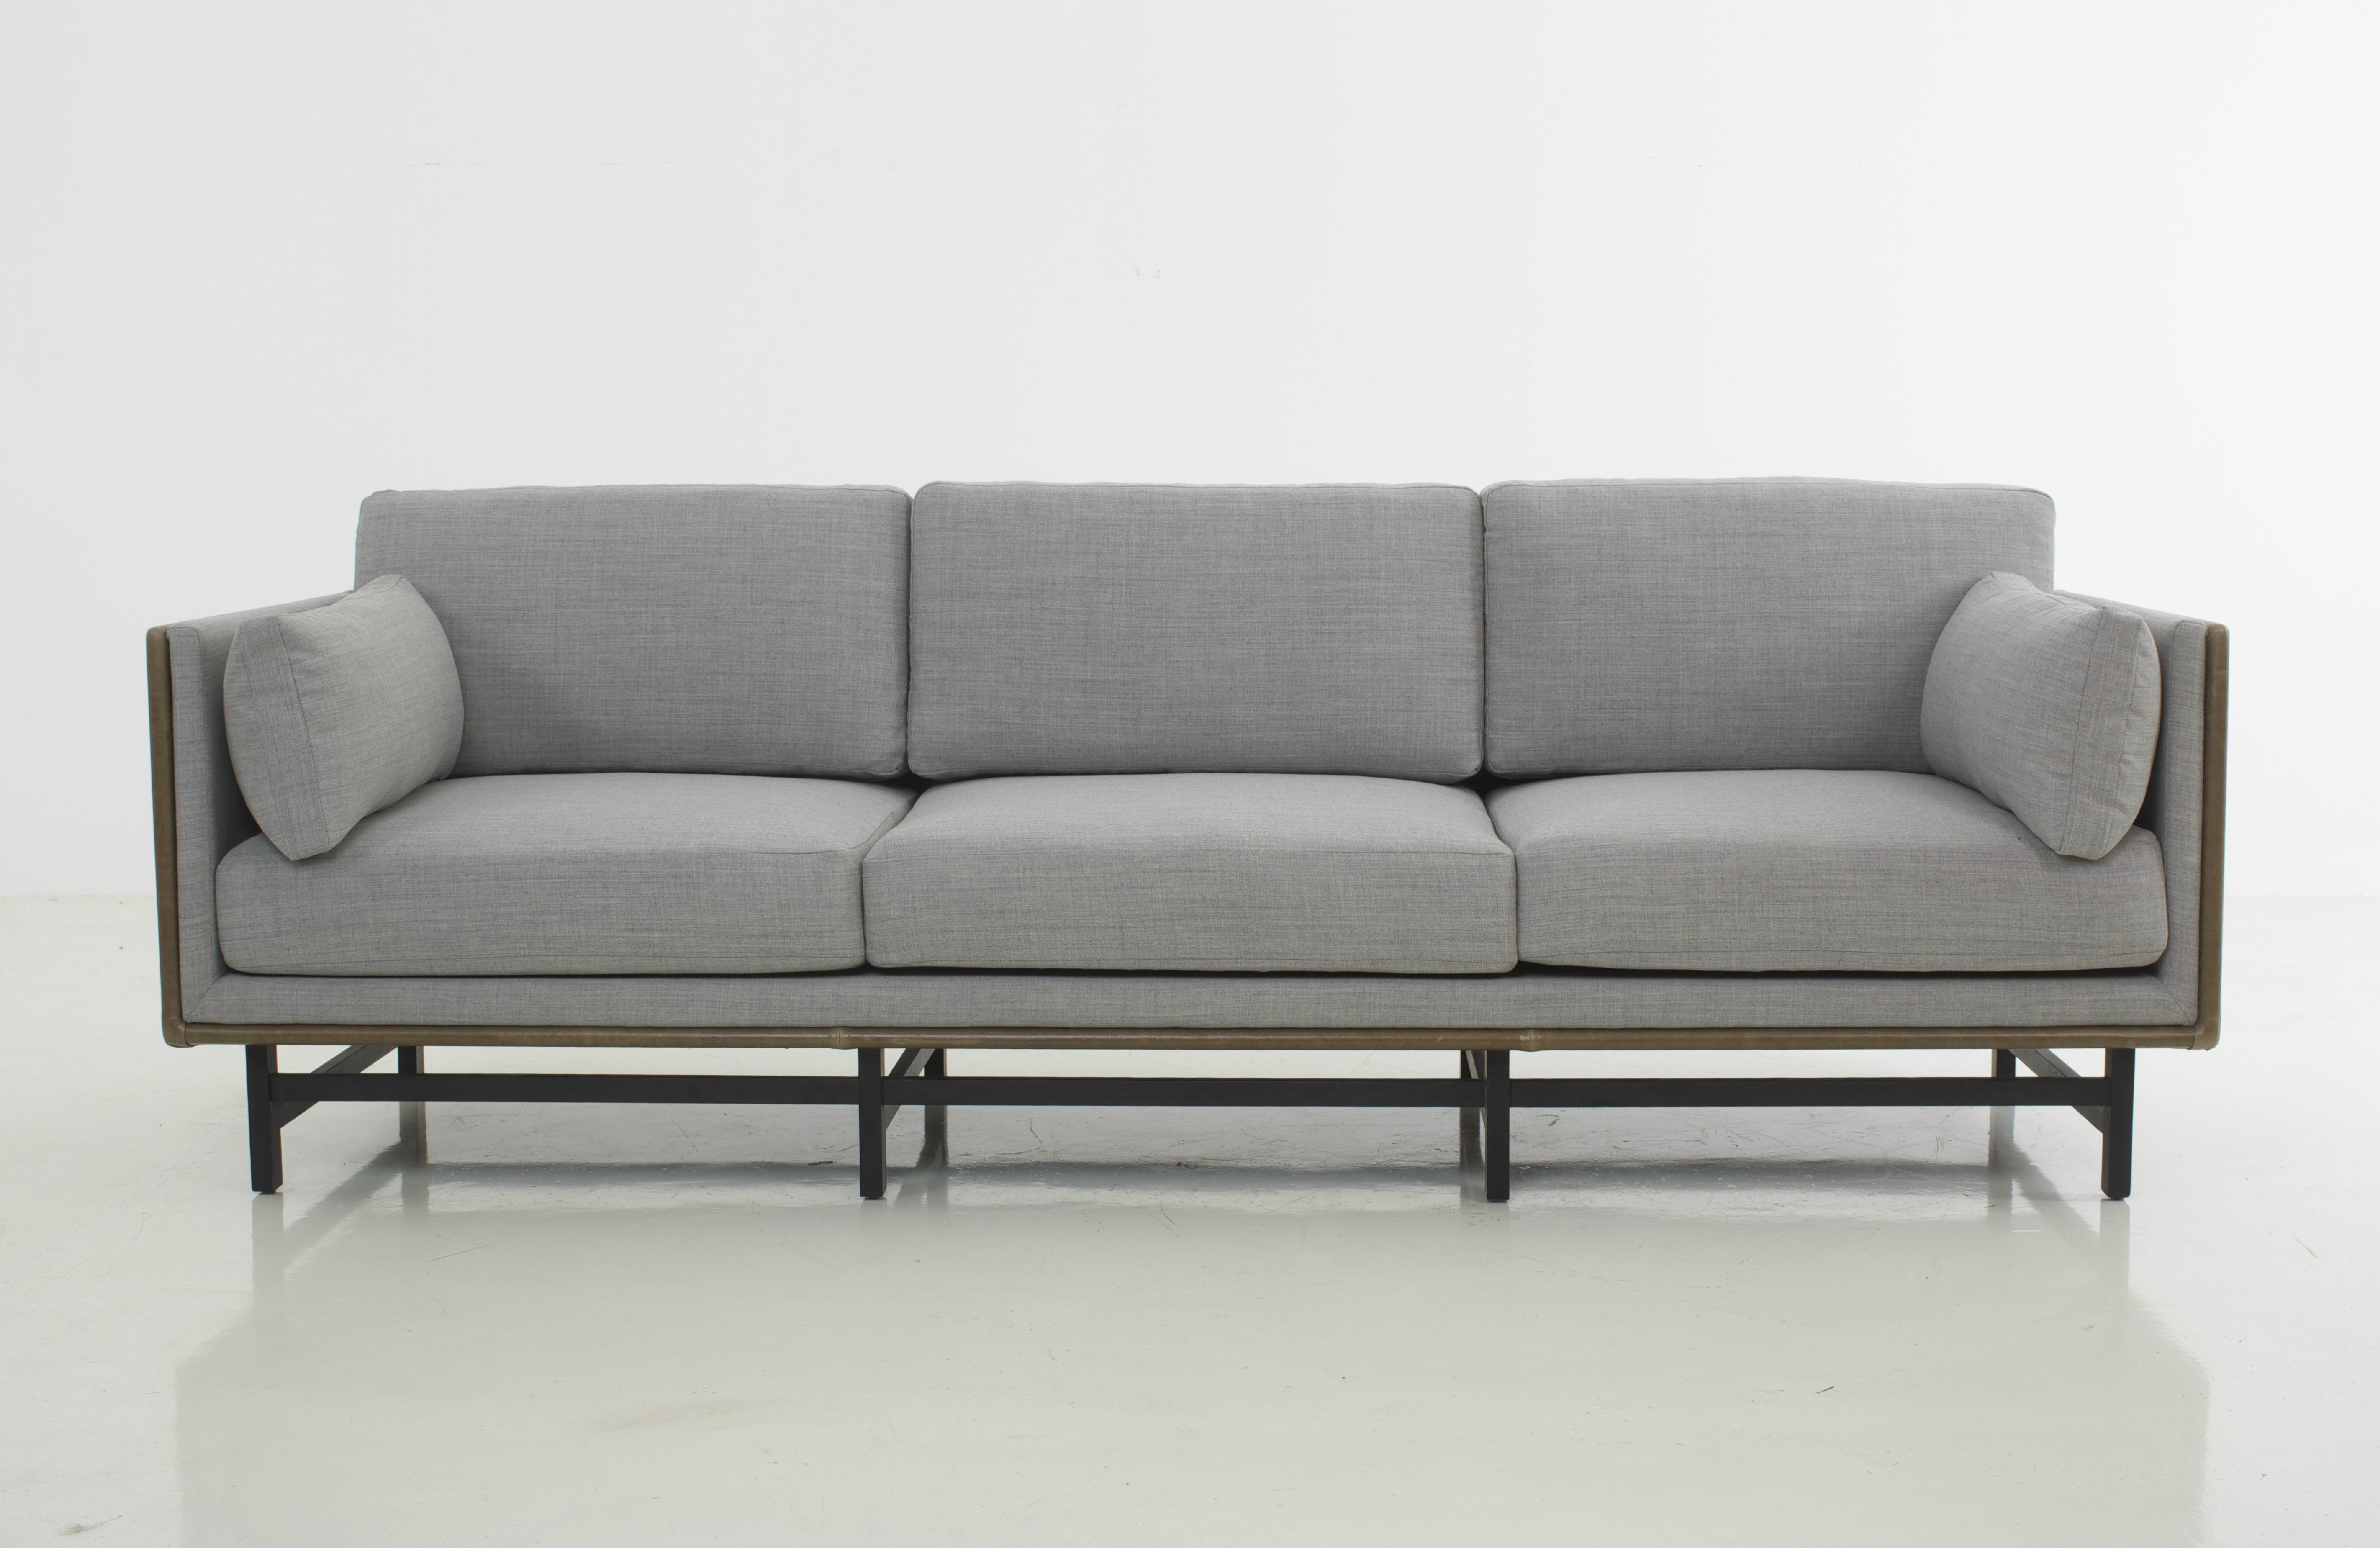 Sw Sofa Three Seater By Stellar Works Design Oeo Three Seater